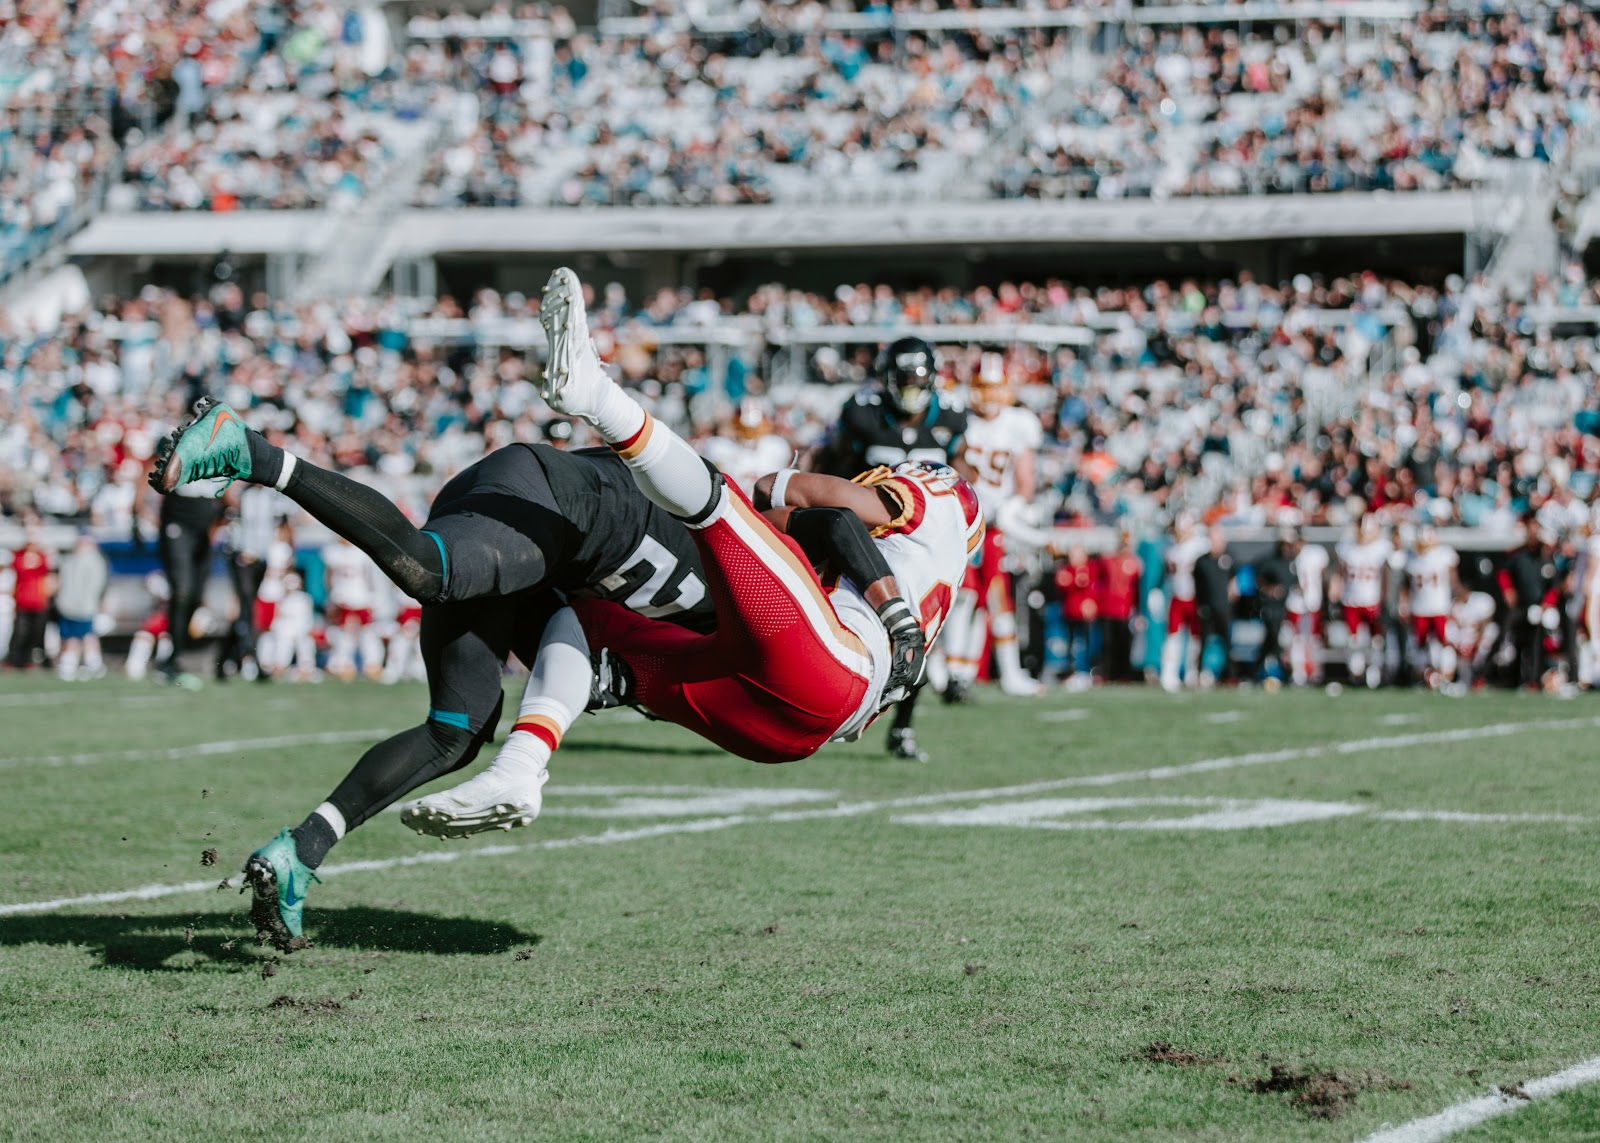 The definitive guide to live sports streaming - one football player tackles another.